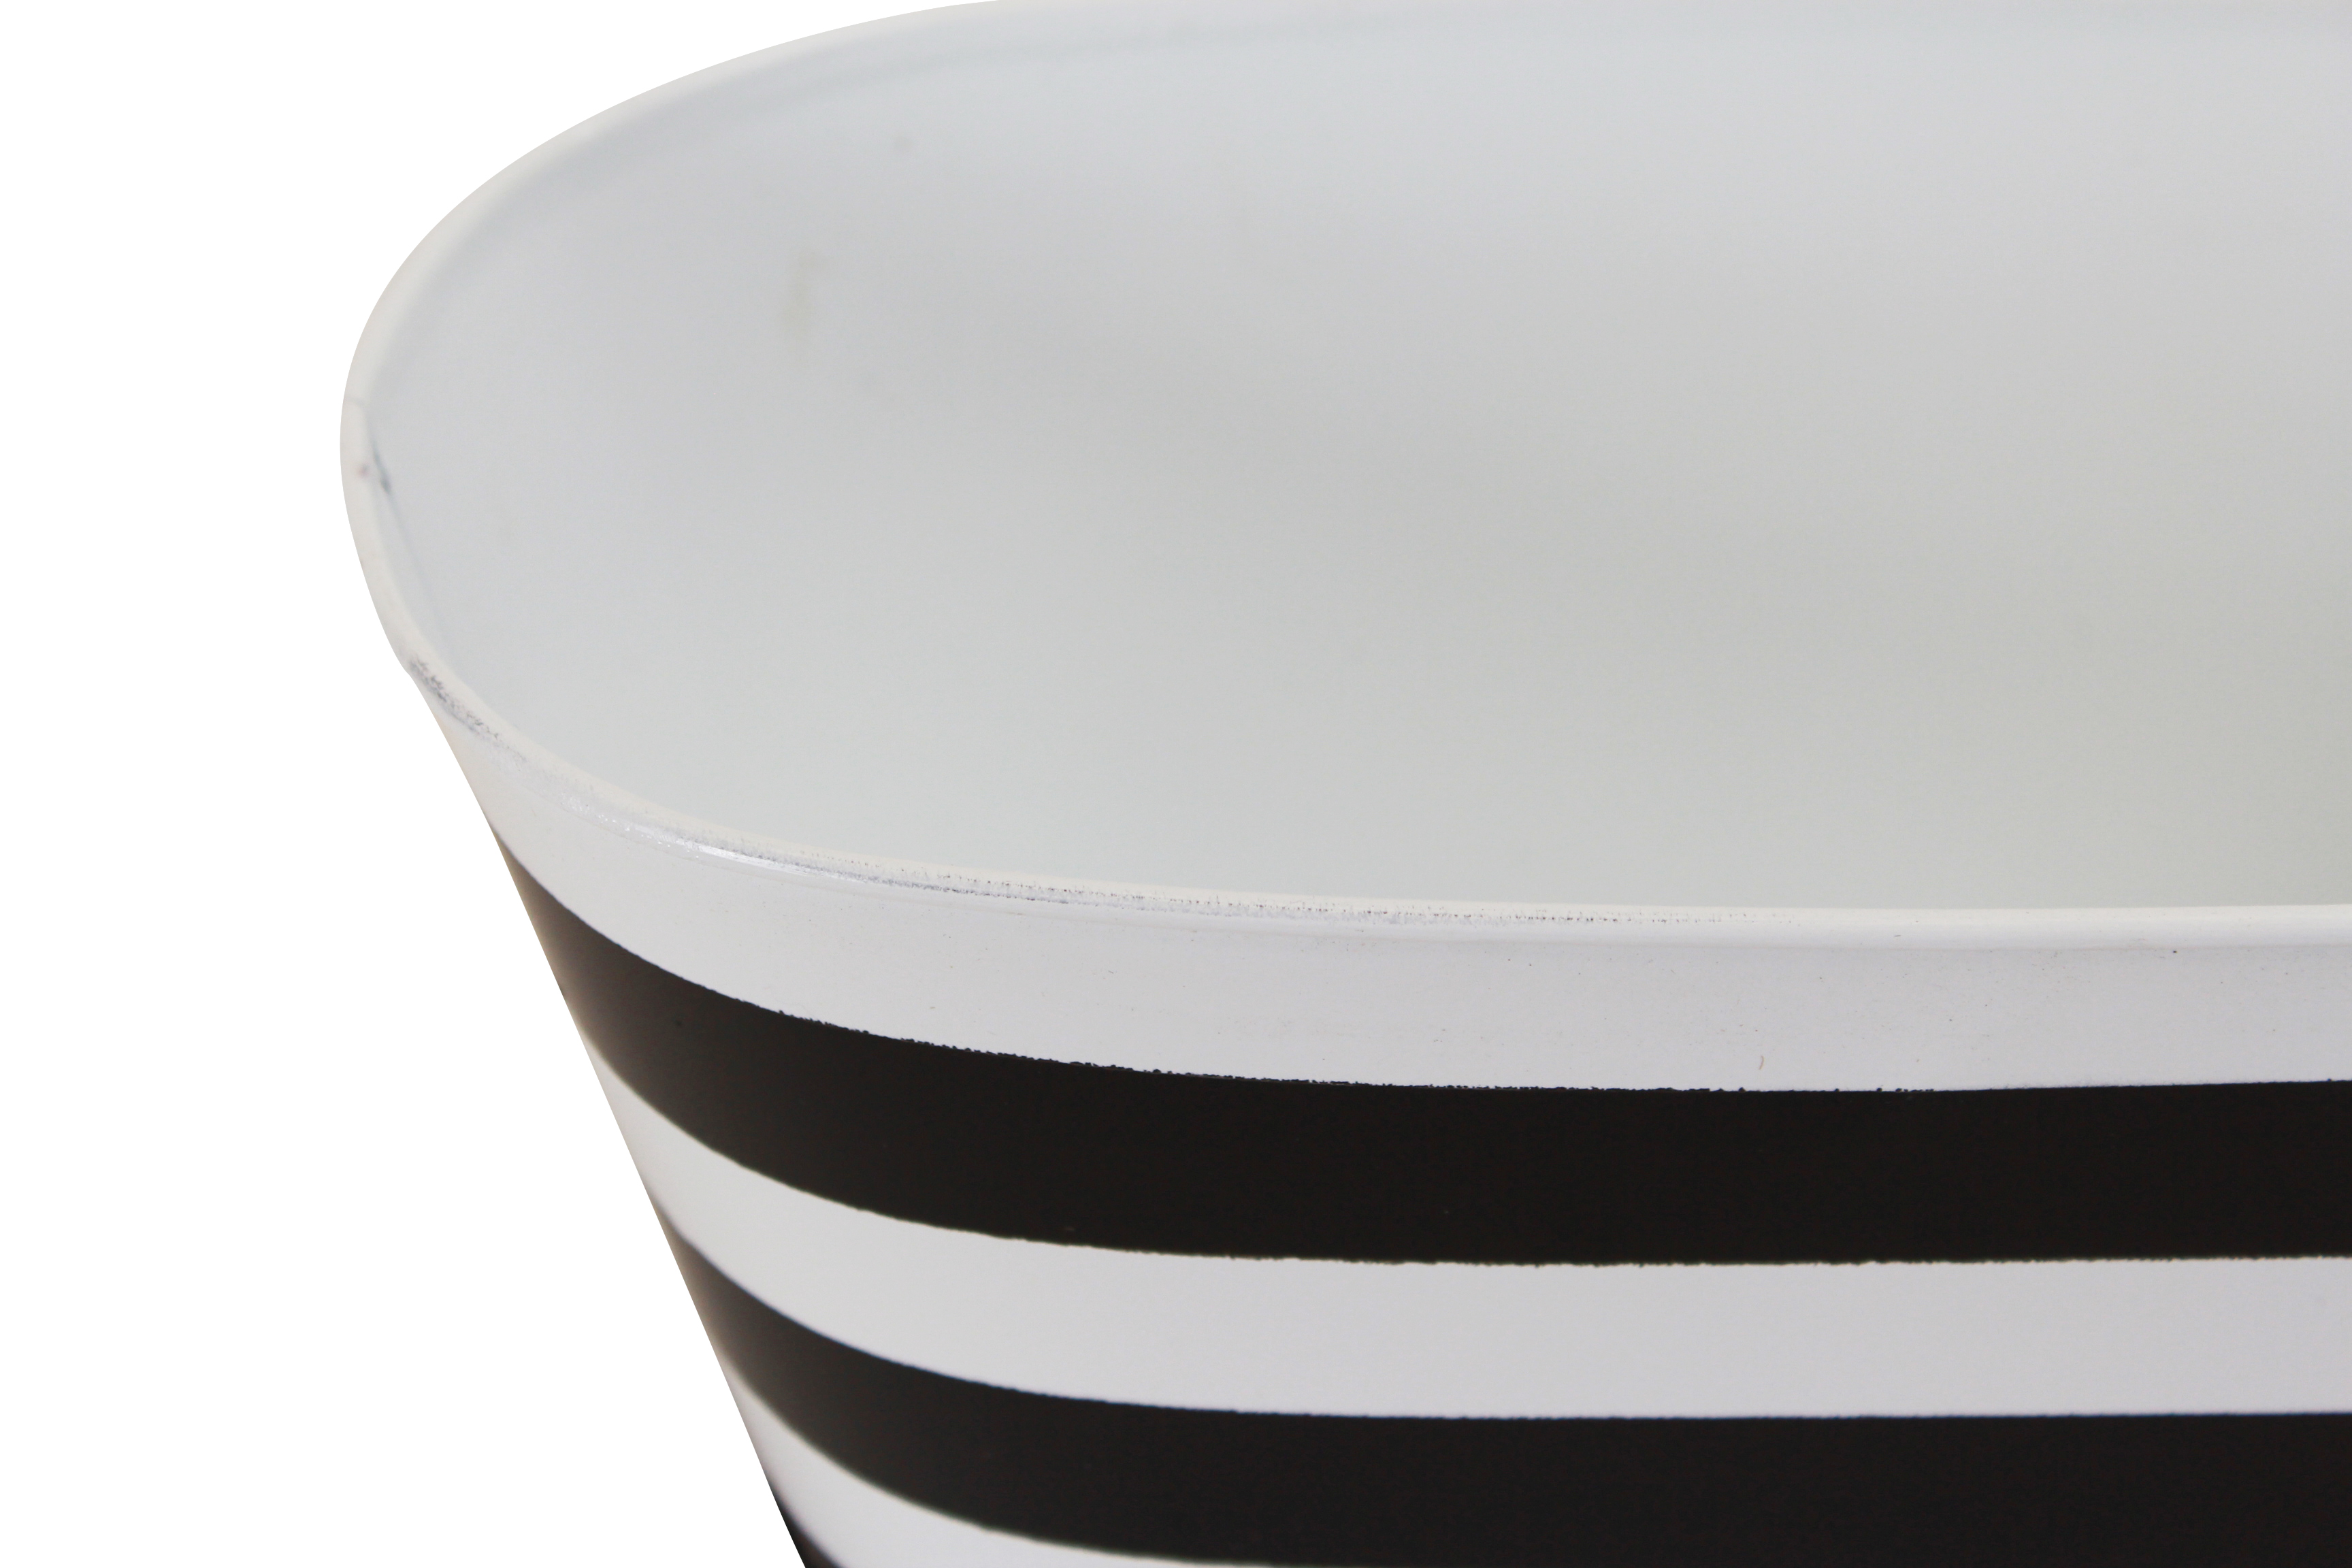 Striped Oval Metal Basket close